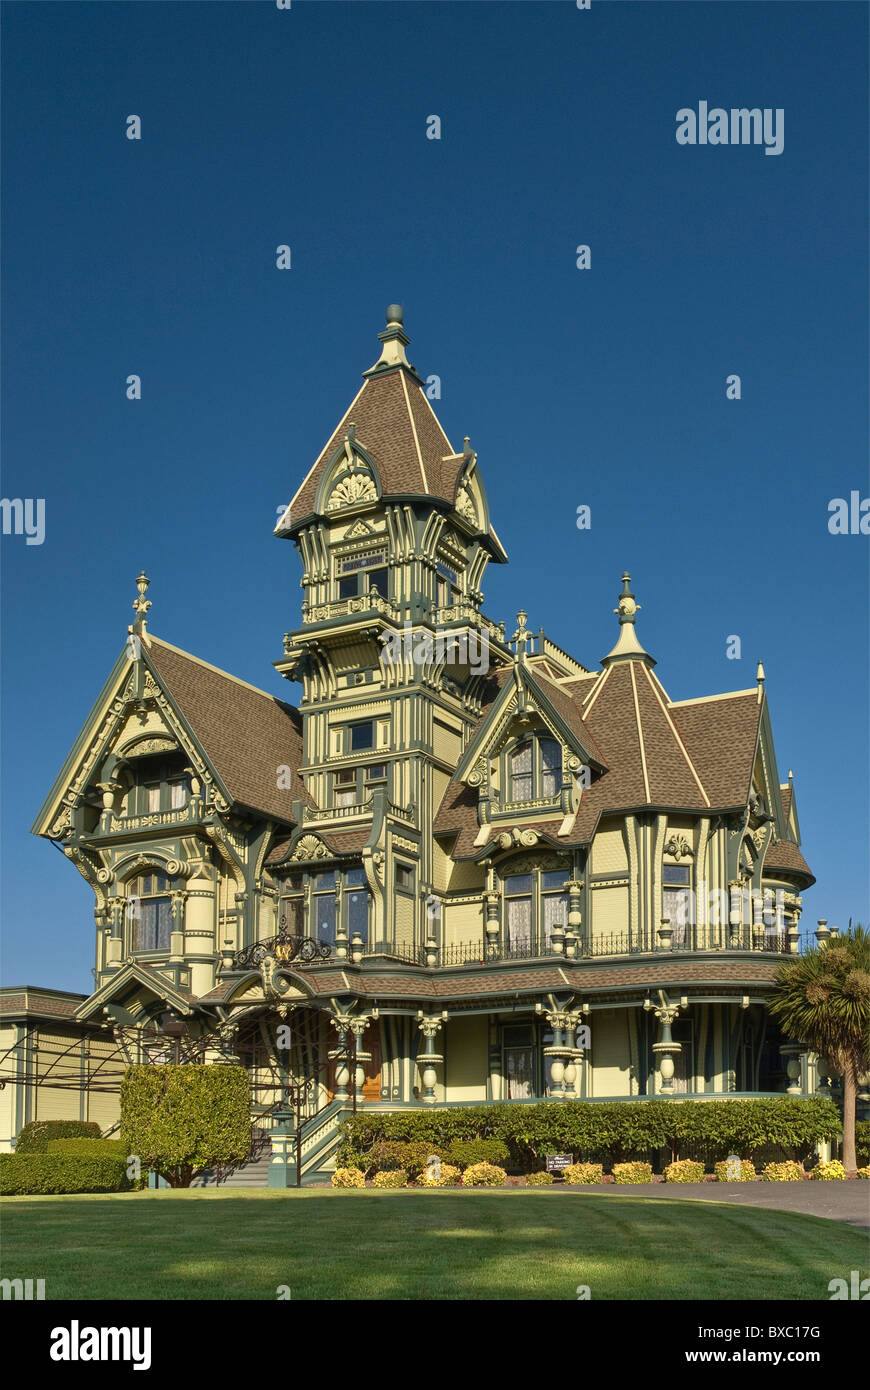 Carson Mansion in Eureka on Redwood Coast, California, USA - Stock Image